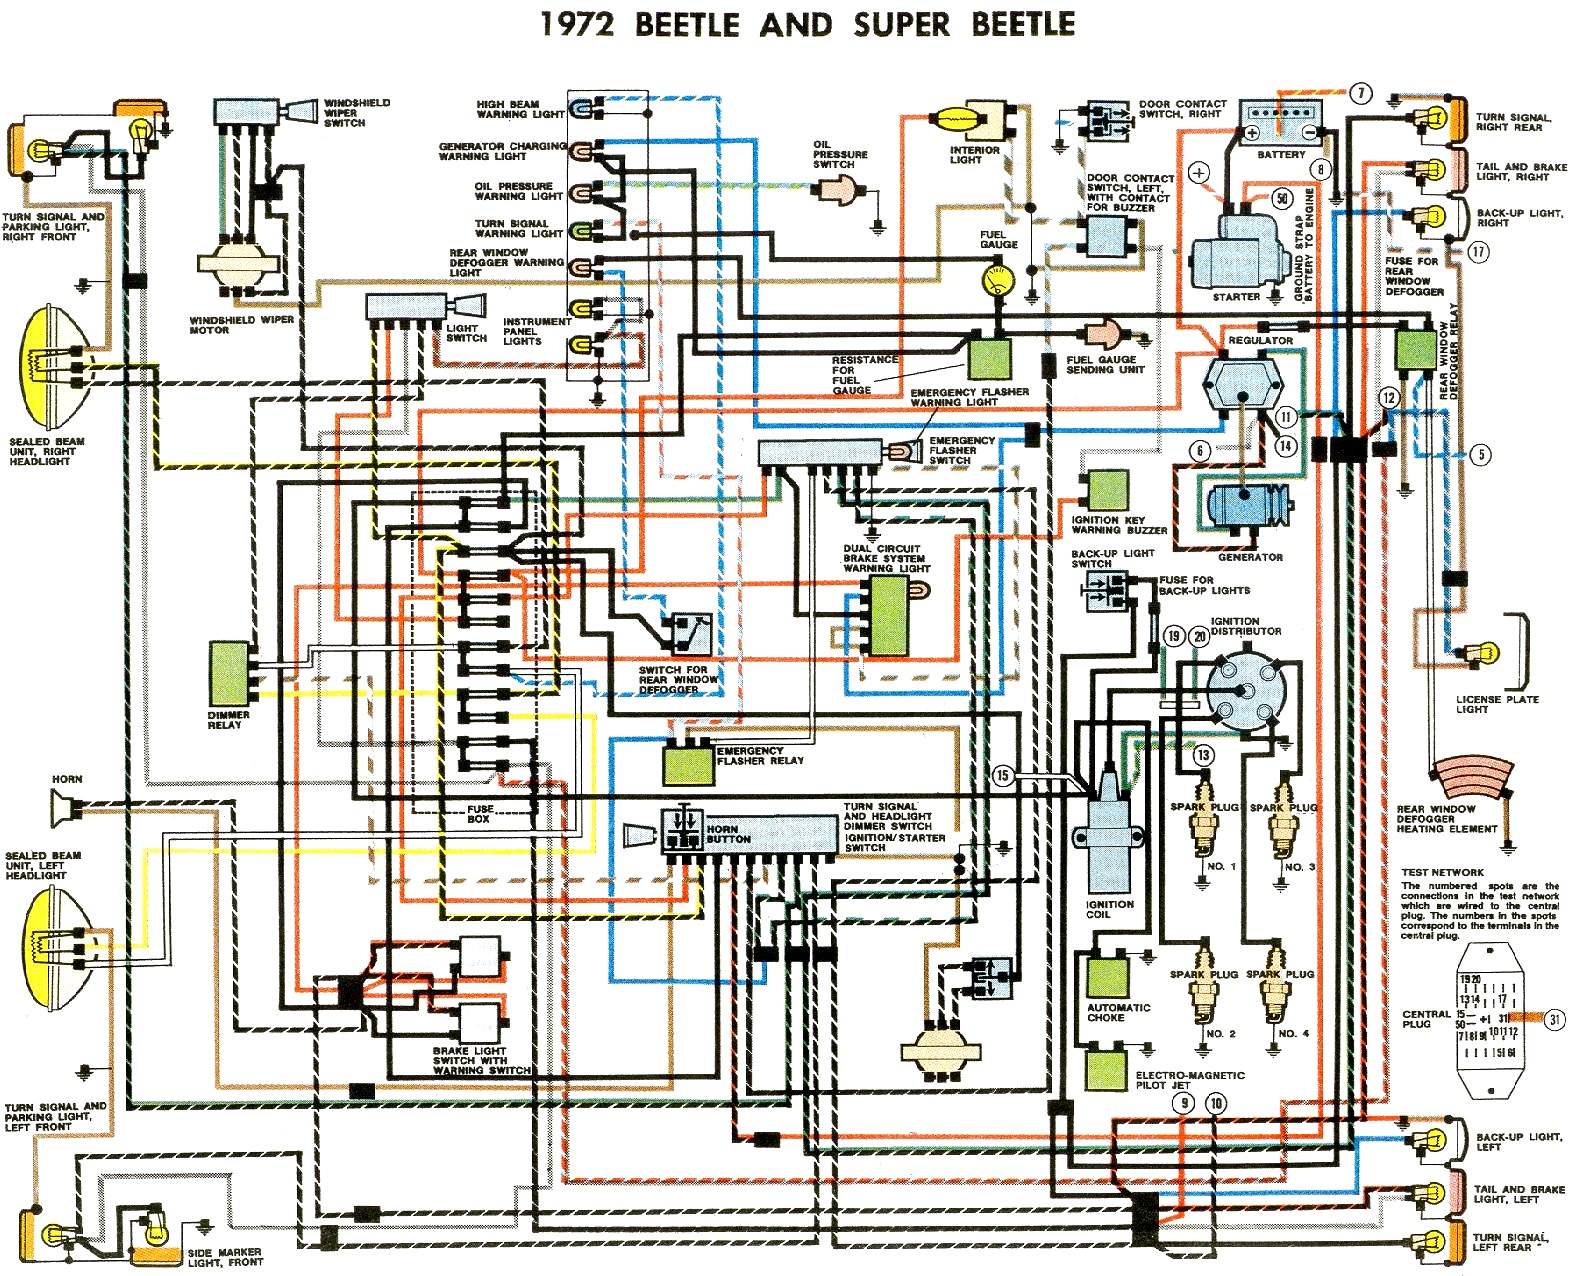 bug_72 1972 beetle wiring diagram thegoldenbug com 1971 volkswagen super beetle wiring diagram at panicattacktreatment.co